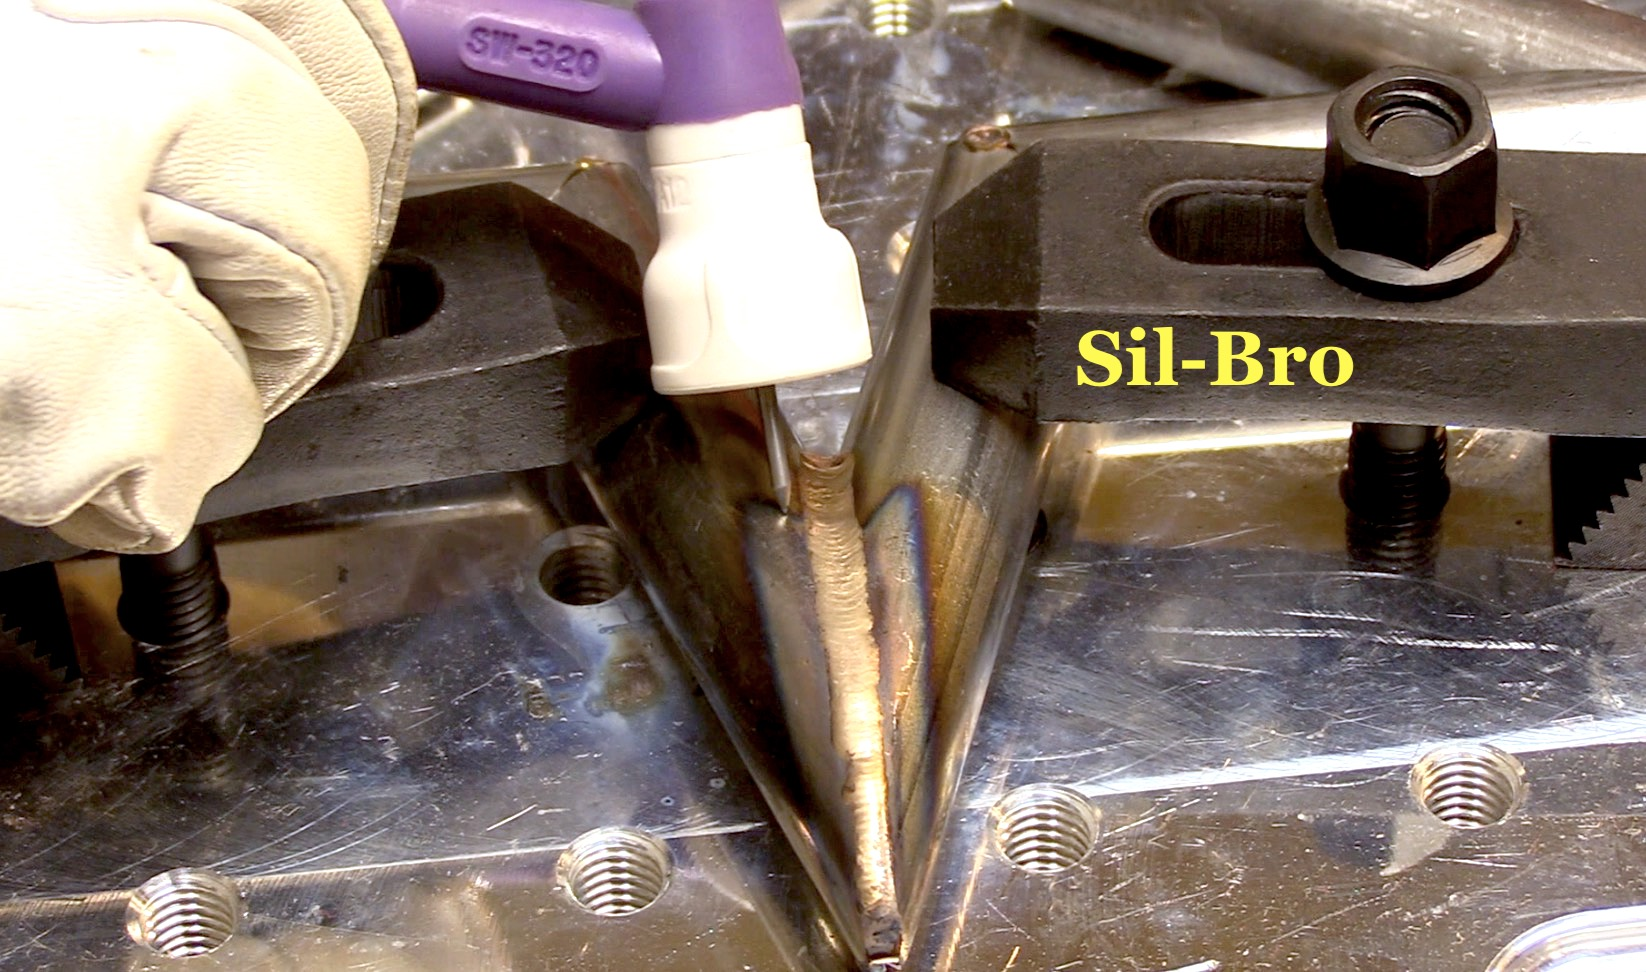 Silicon Bronze Filler Rod On Blackened Steel